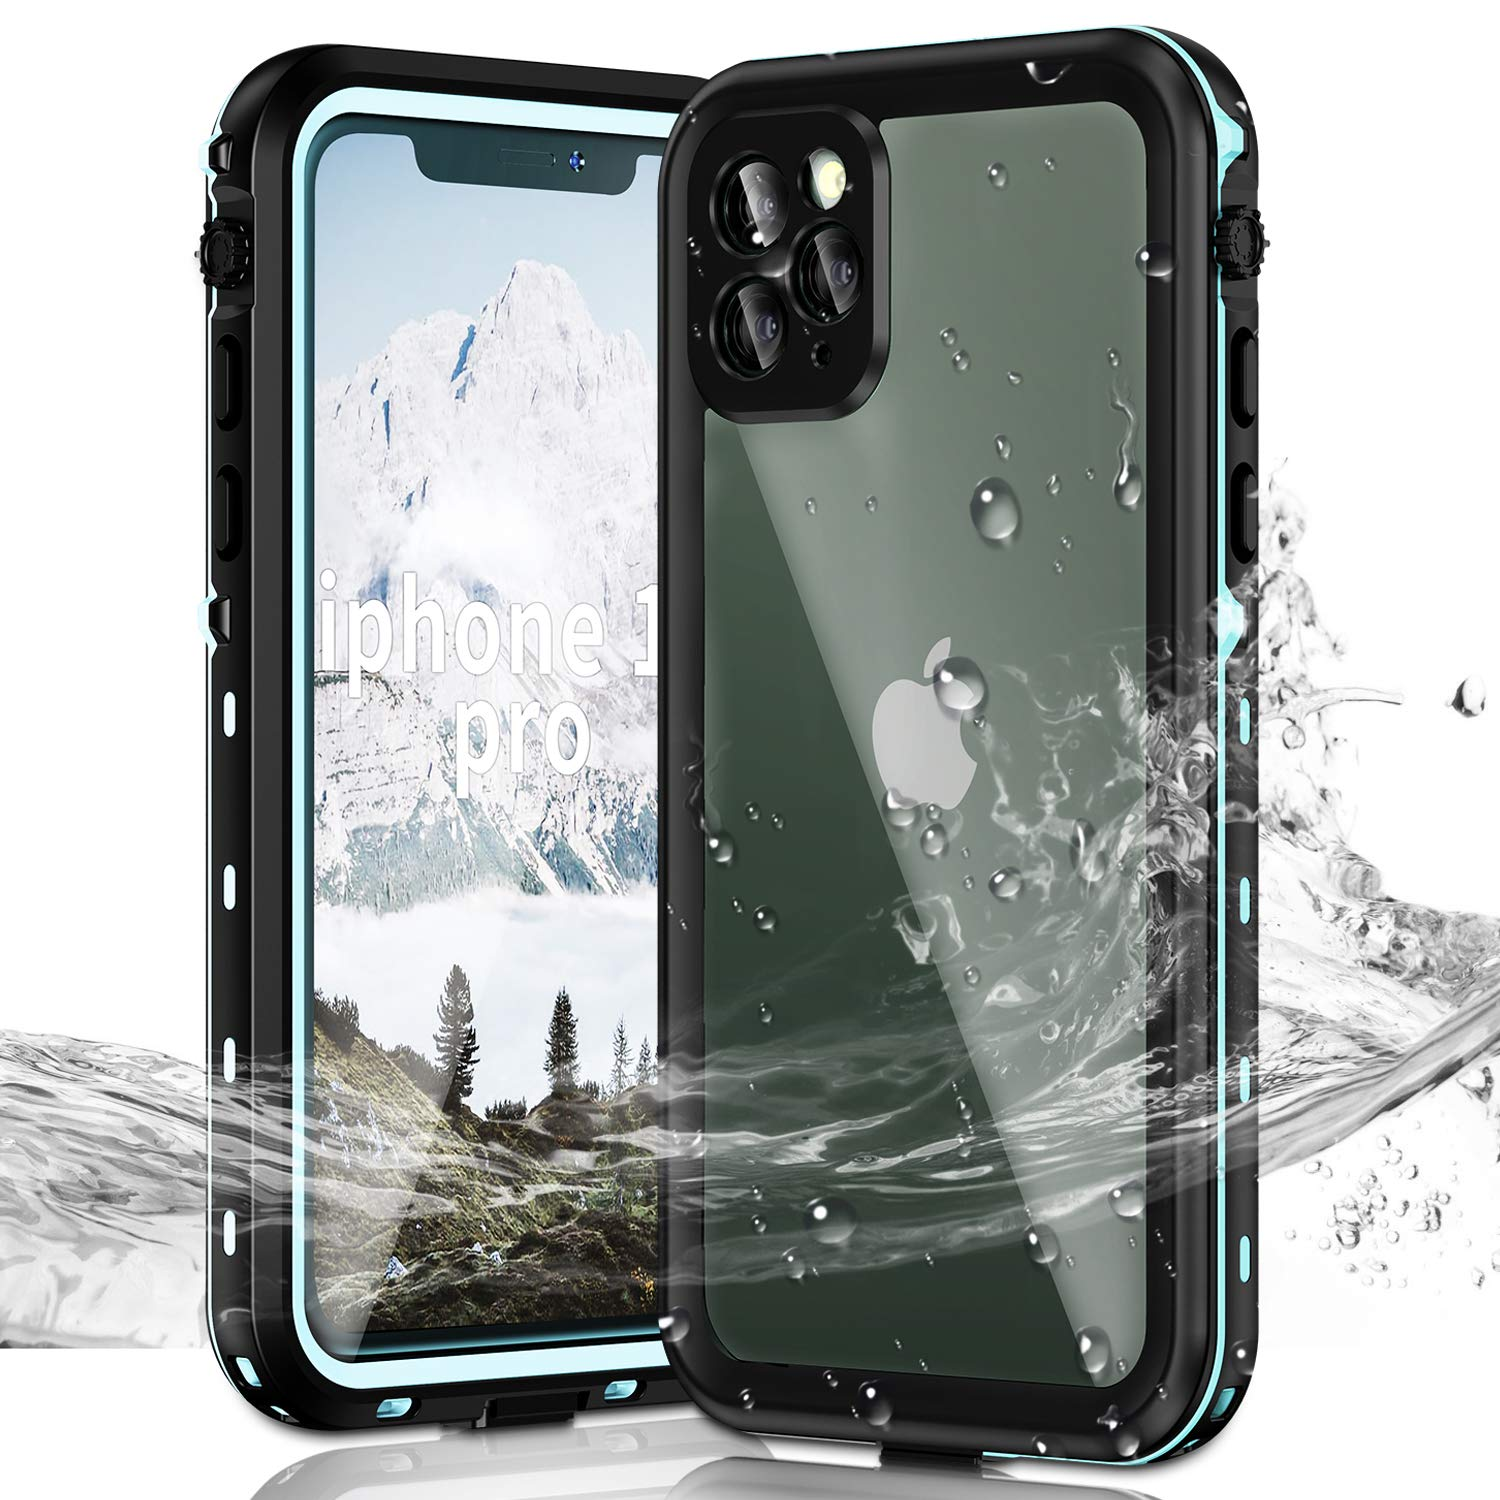 Janazan iPhone 11 Pro Waterproof Case, Full Sealed Underwater Protective Cover, Waterproof Shockproof Snowproof Dirtproof with Built-in Screen Protector for iPhone 11 Pro 5.8 inch 2019 (Blue)